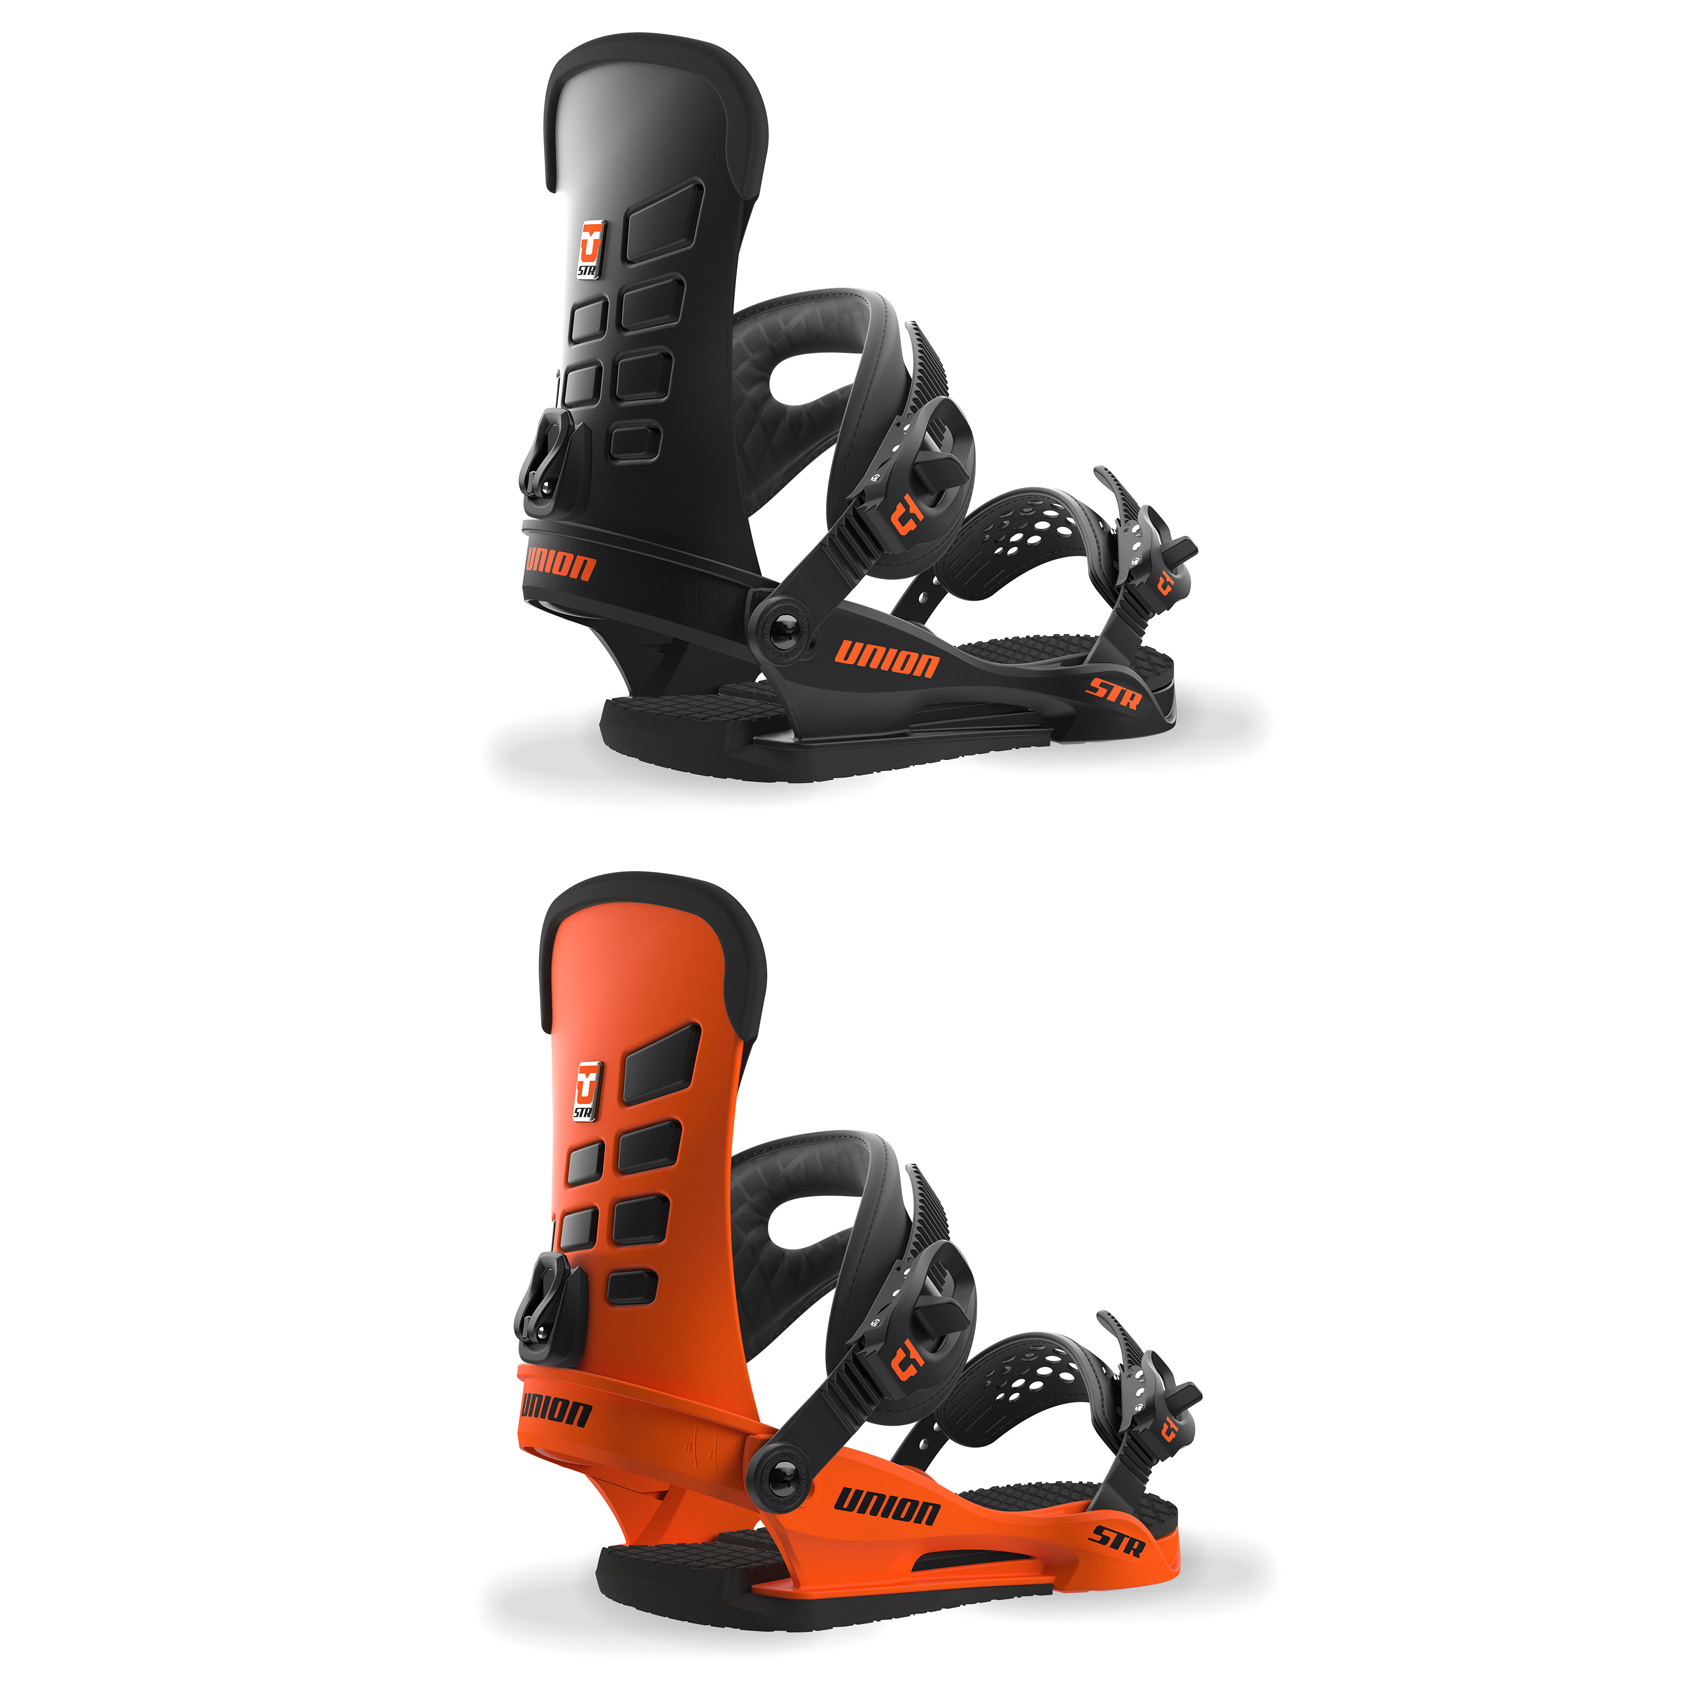 023a113a930 Sentinel Union Snowboard Bindings - STR Lightweight All-Mountain Freestyle  - 2018